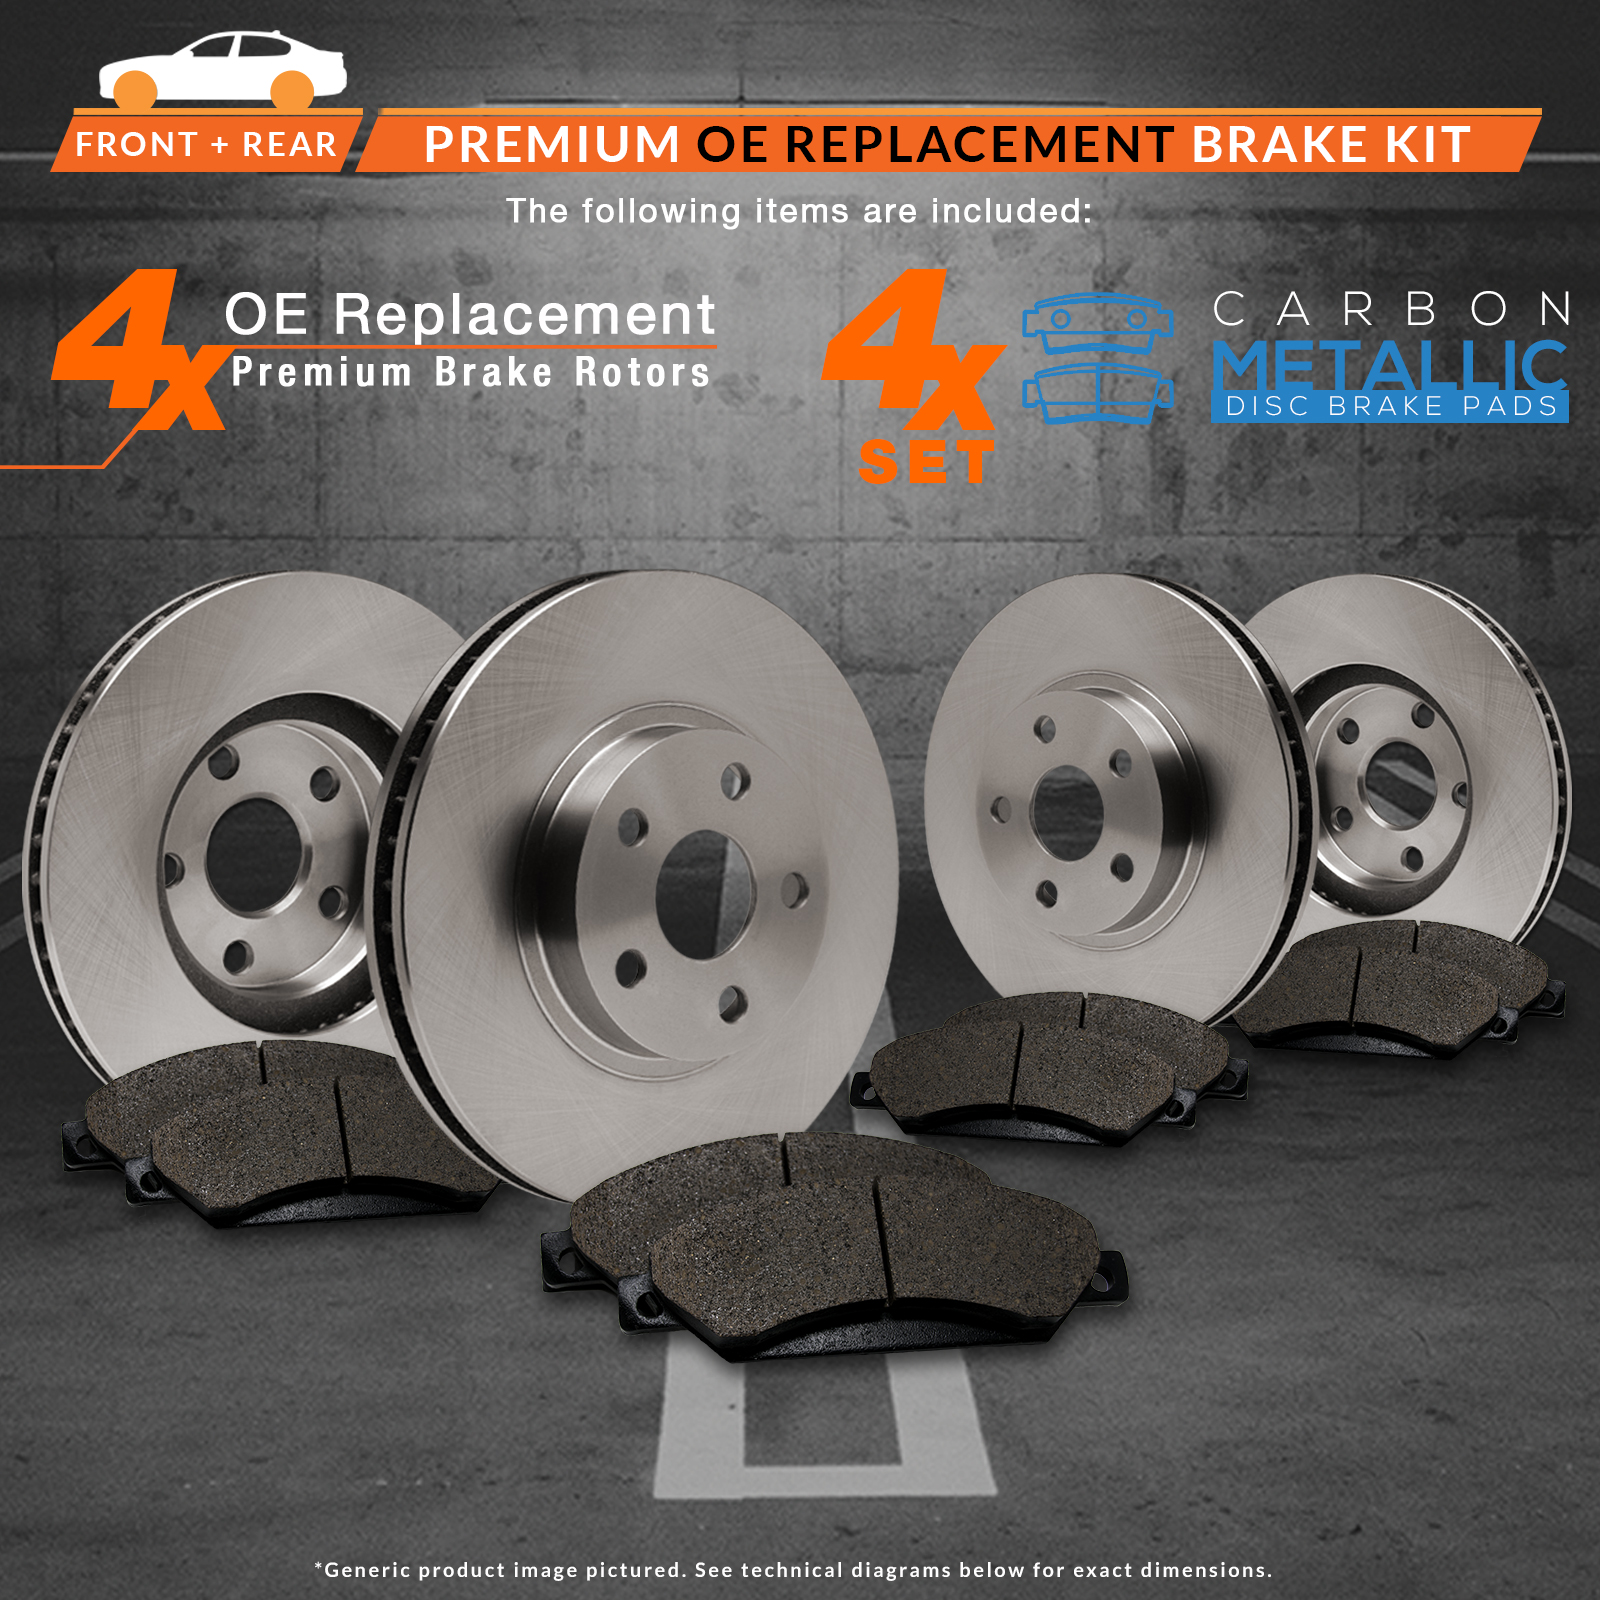 2007-BMW-328i-E90-Sdn-Cpe-2WD-OE-Replacement-Rotors-w-Metallic-Pads-F-R miniature 2